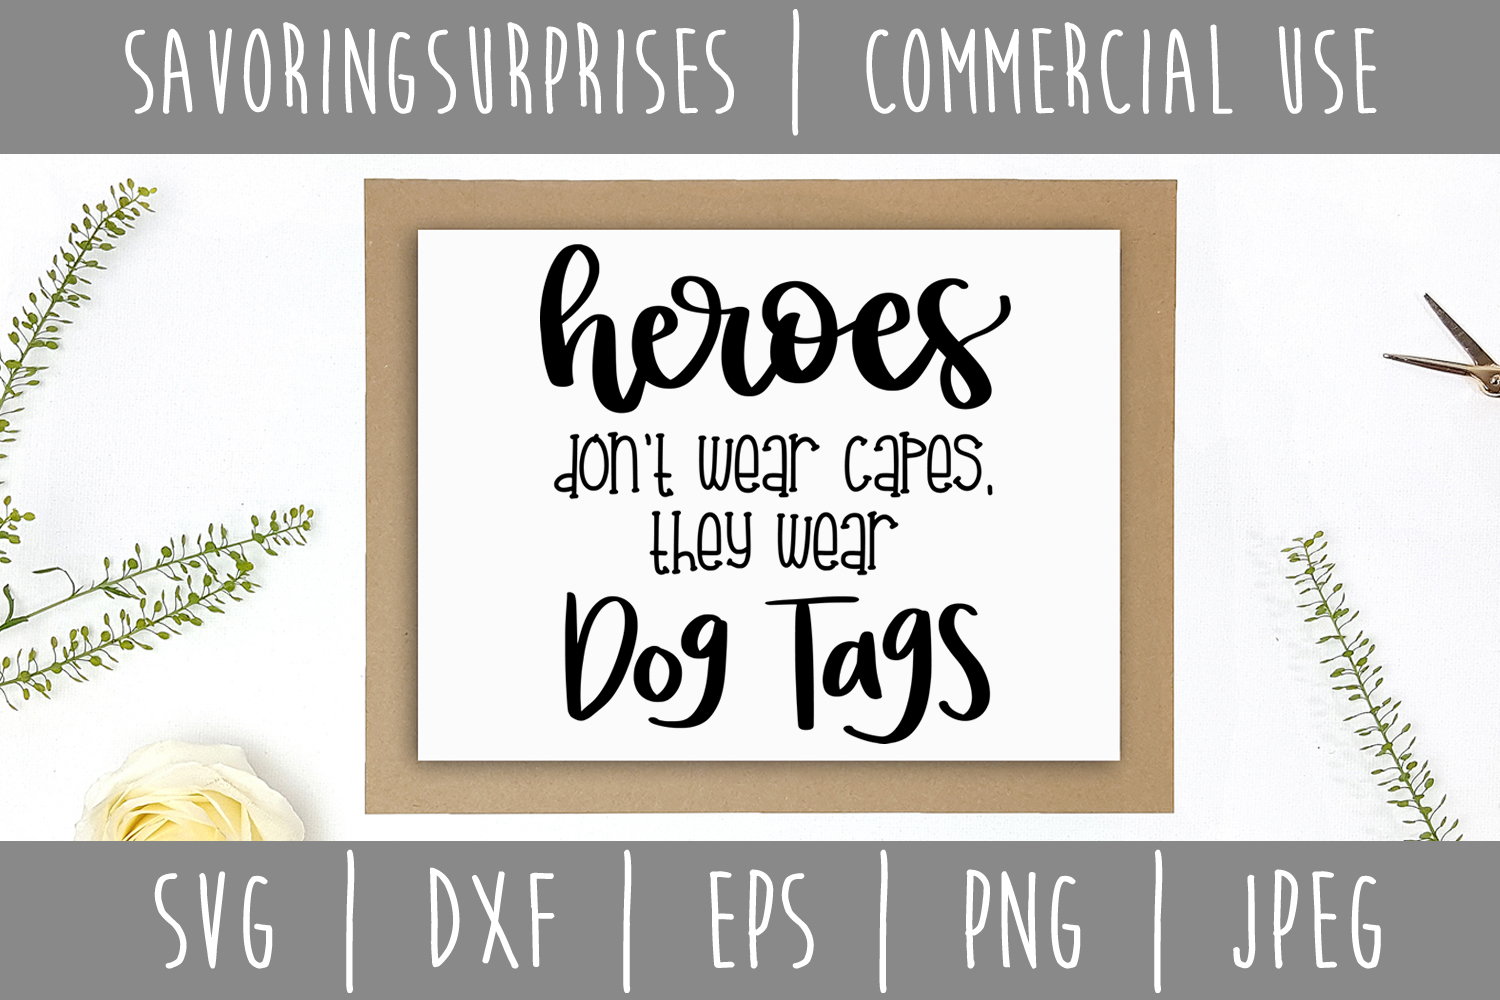 Heroes Don't Wear Capes SVG, DXF, EPS, PNG JPEG example image 2